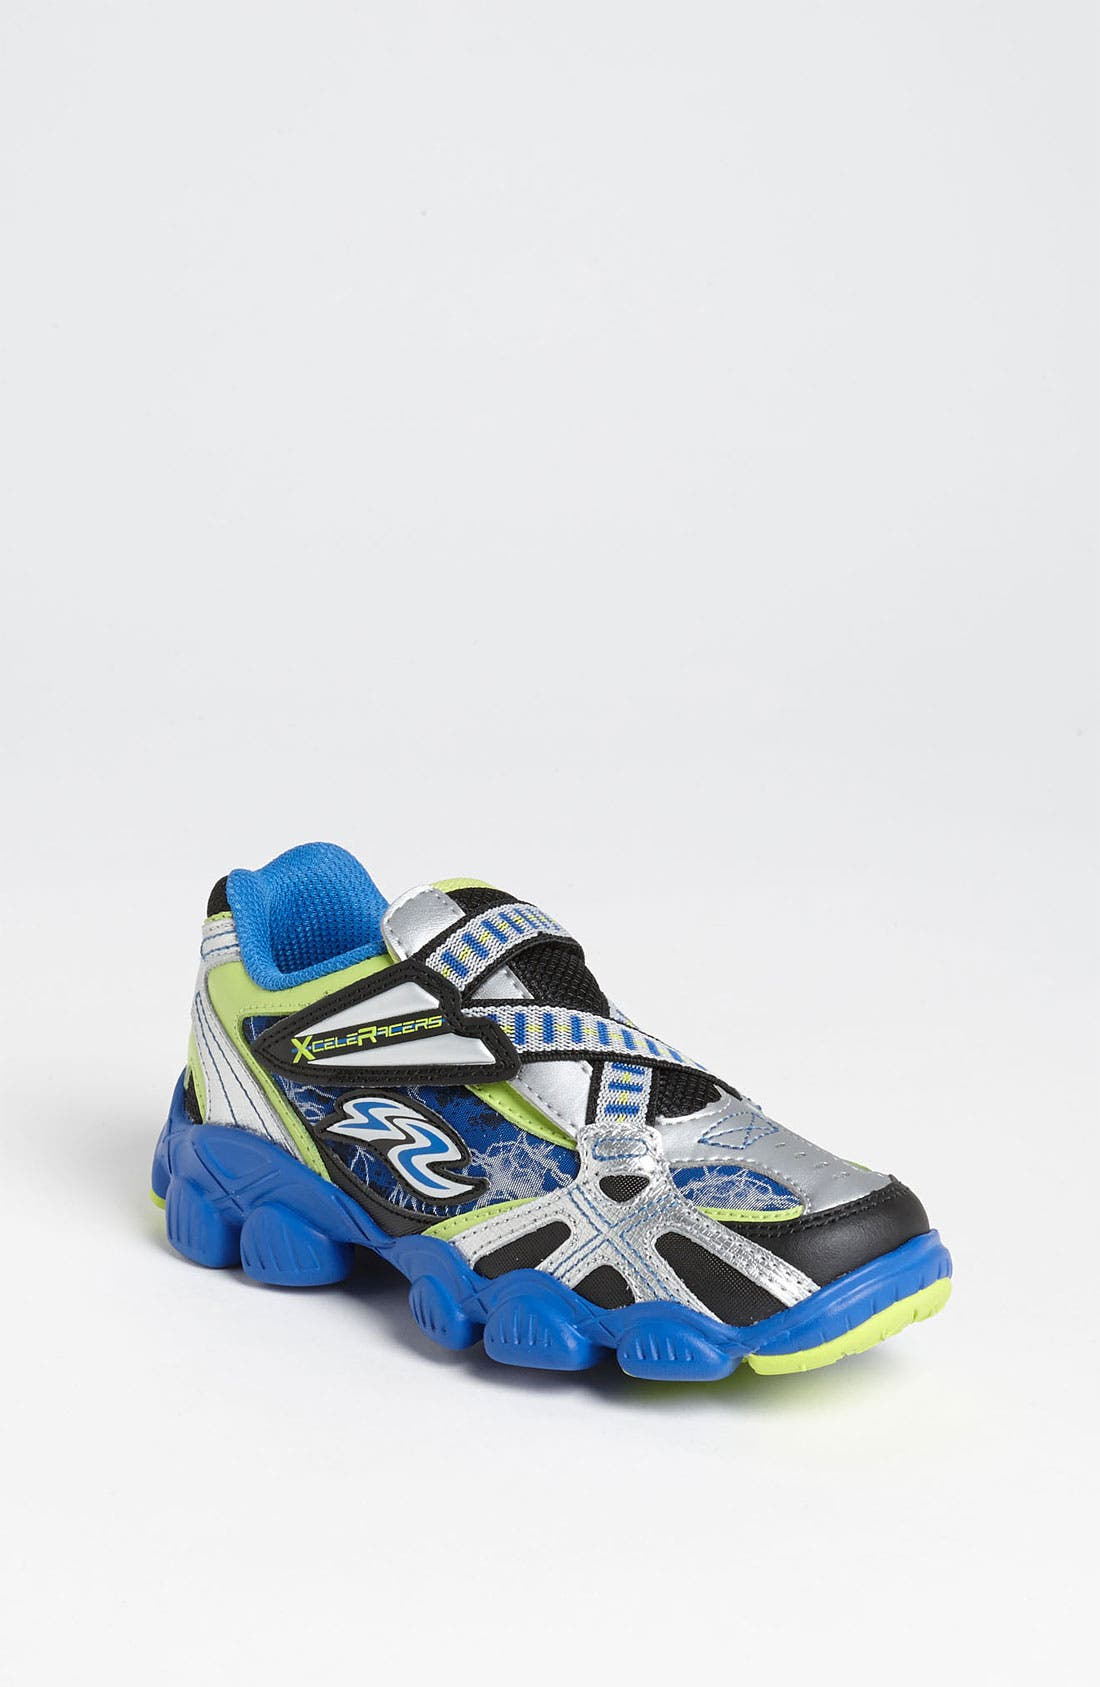 Alternate Image 1 Selected - Stride Rite 'X-celeracer' Sneaker (Toddler & Little Kid)